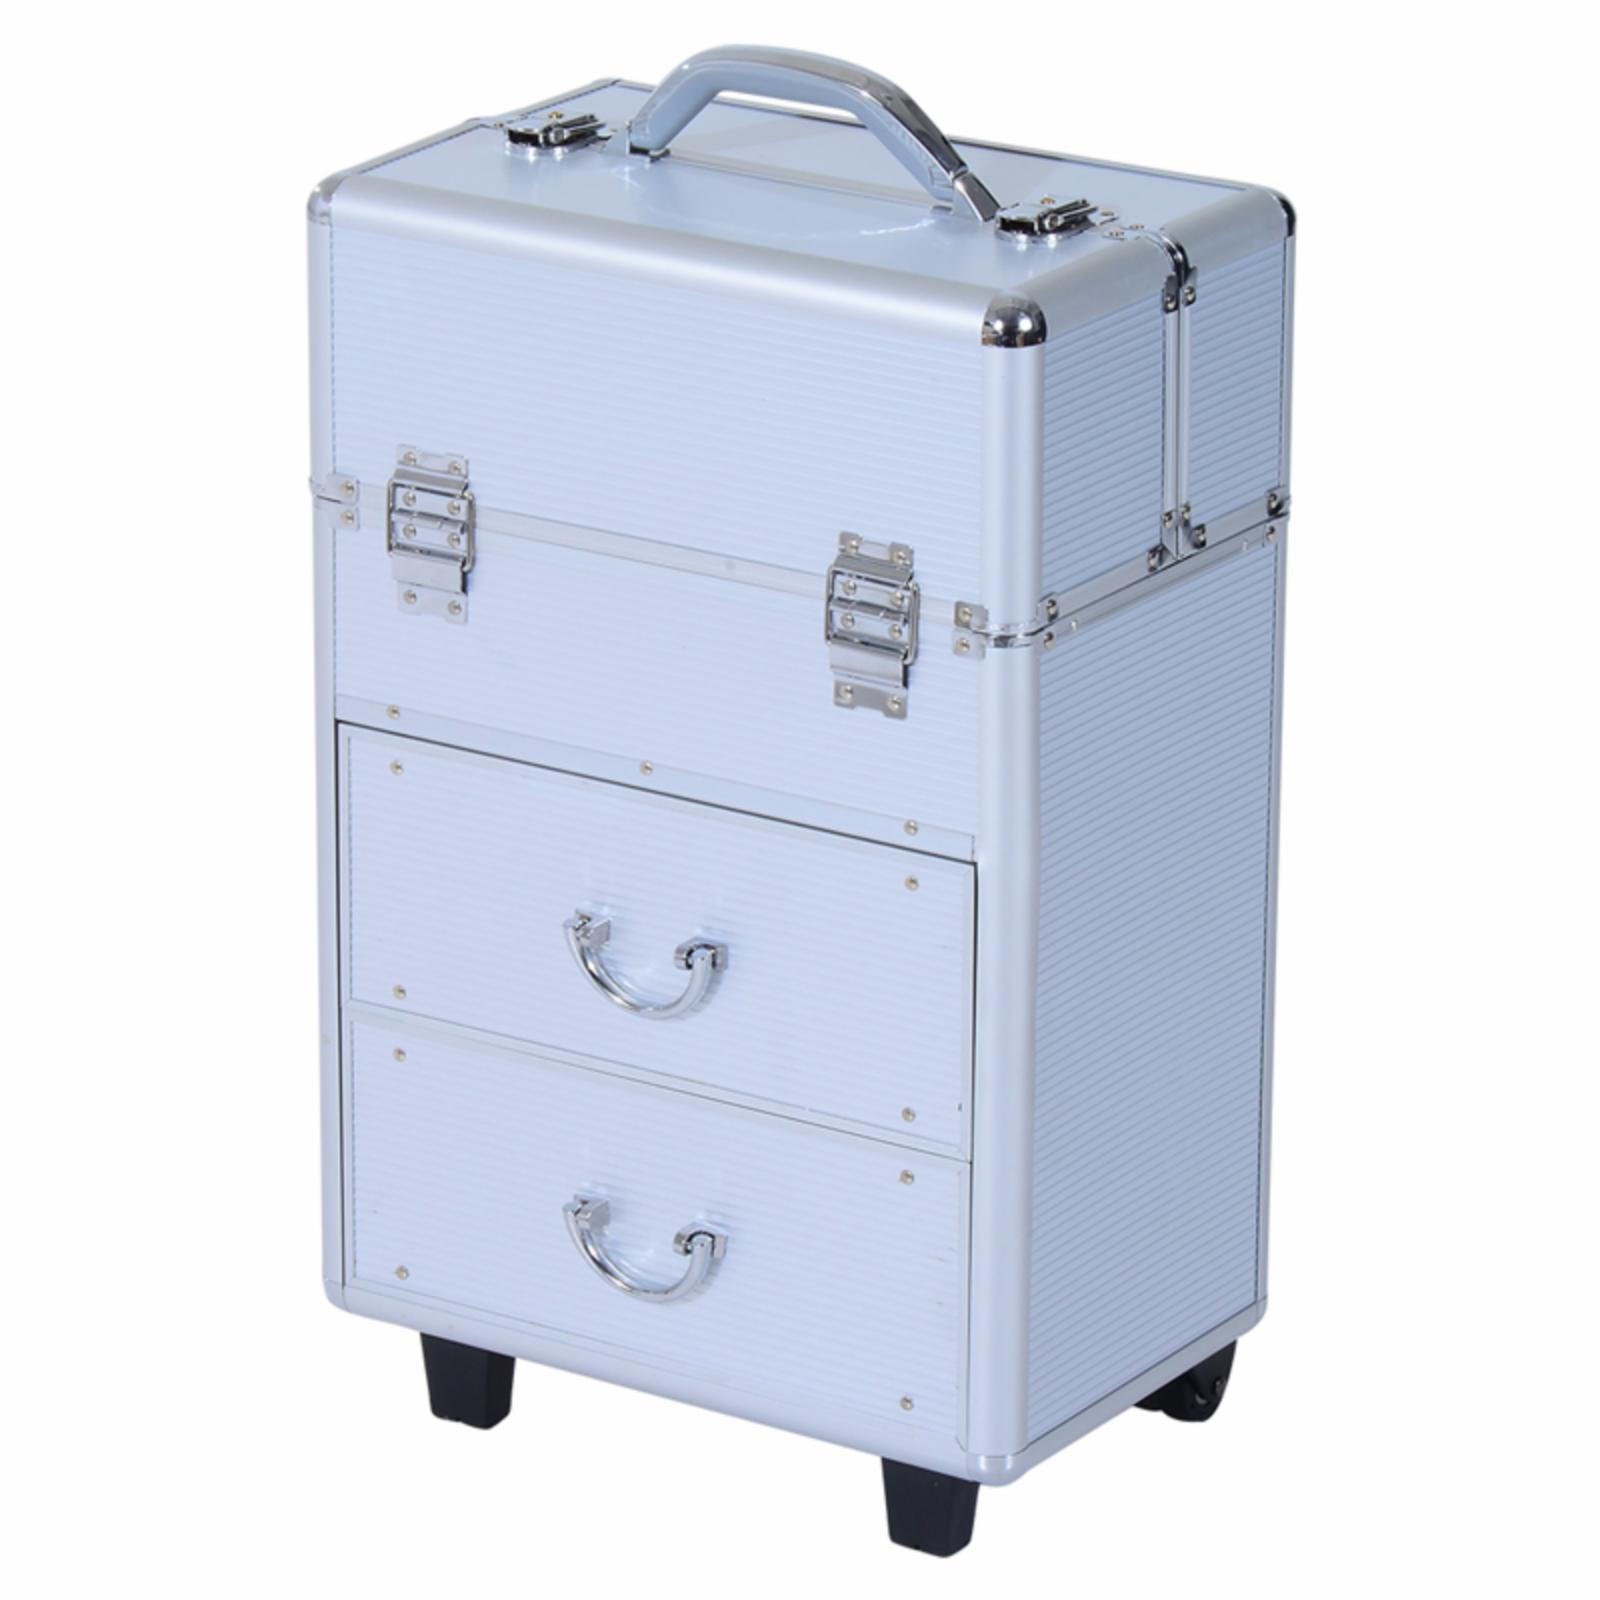 Soozier 4 Tier Lockable Cosmetic Makeup Train Case with E...